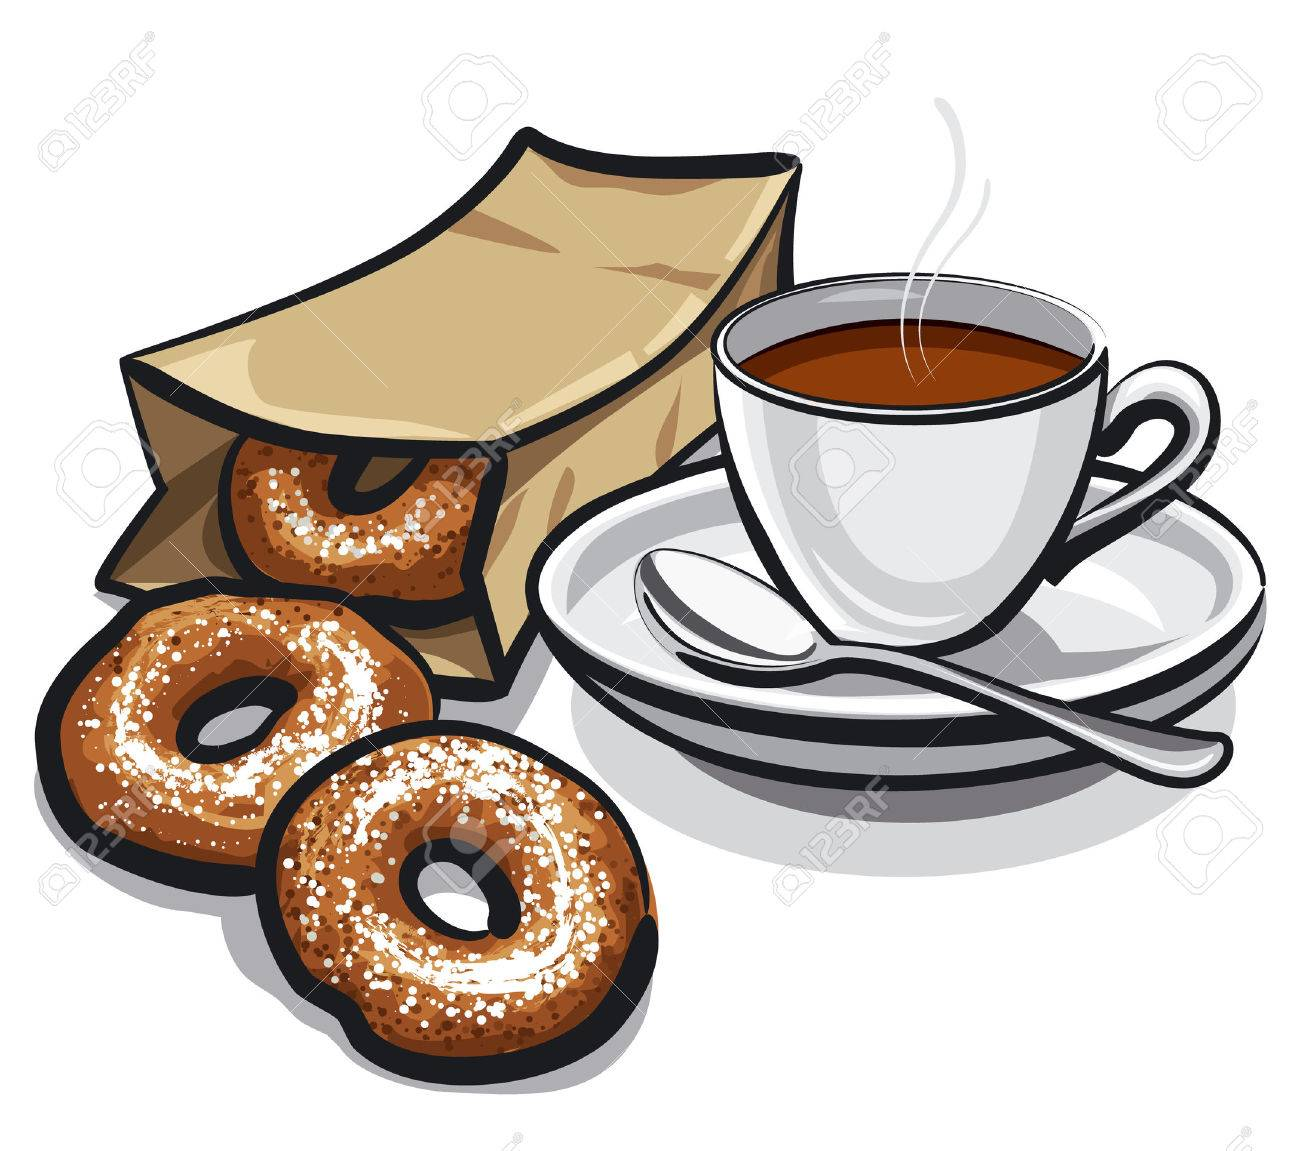 1366 Donuts free clipart.